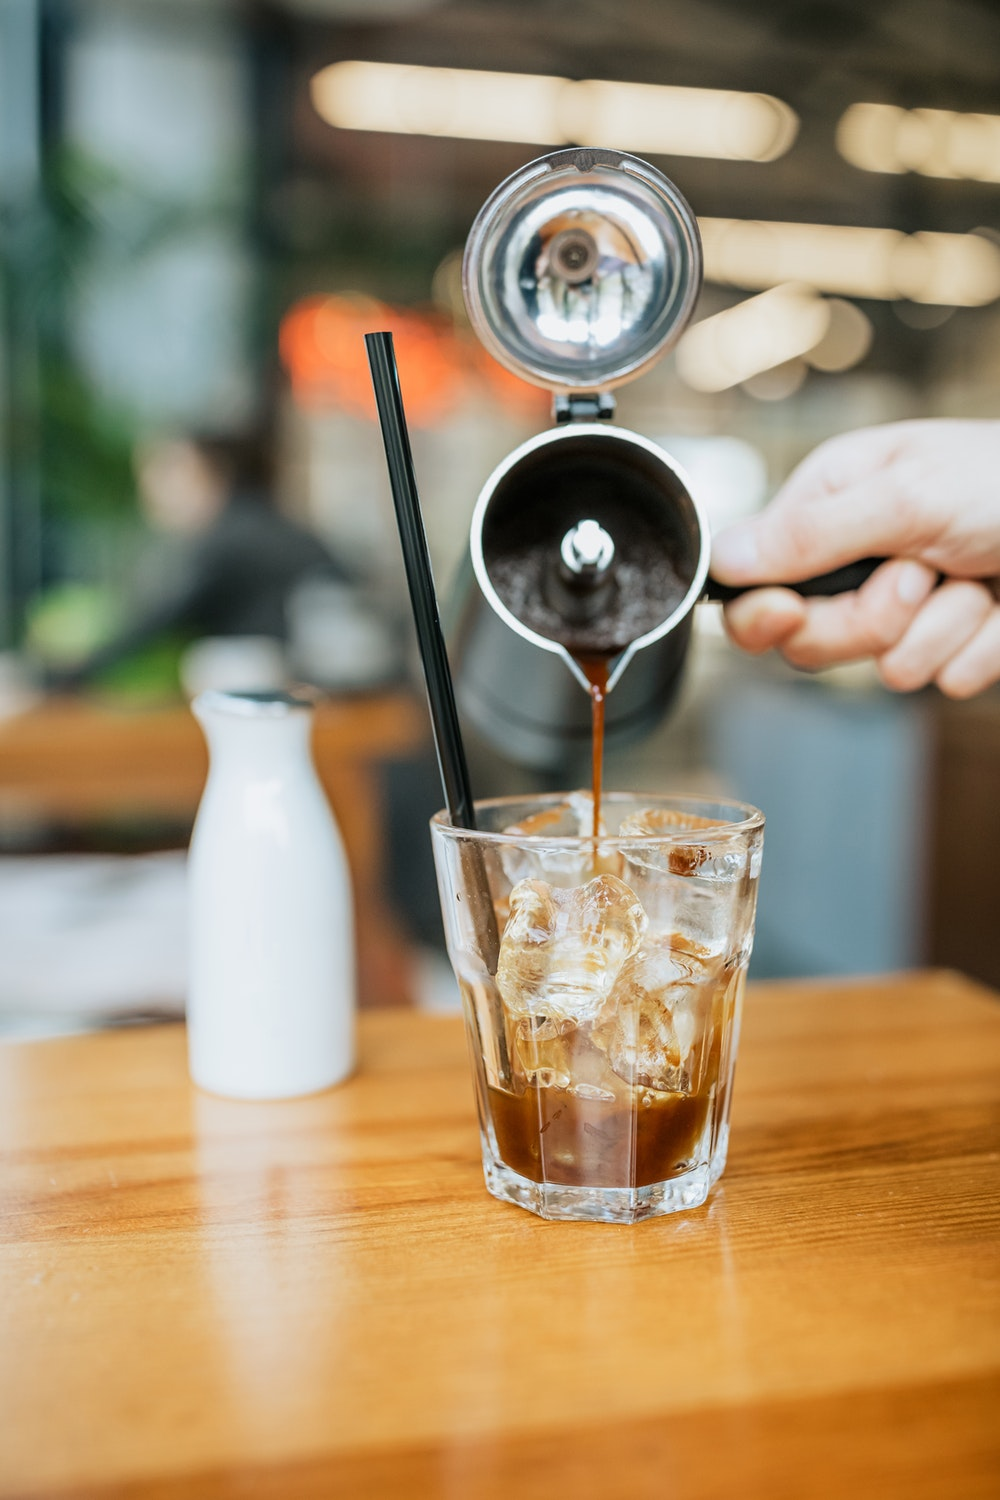 how much caffeine is in cold brew coffee